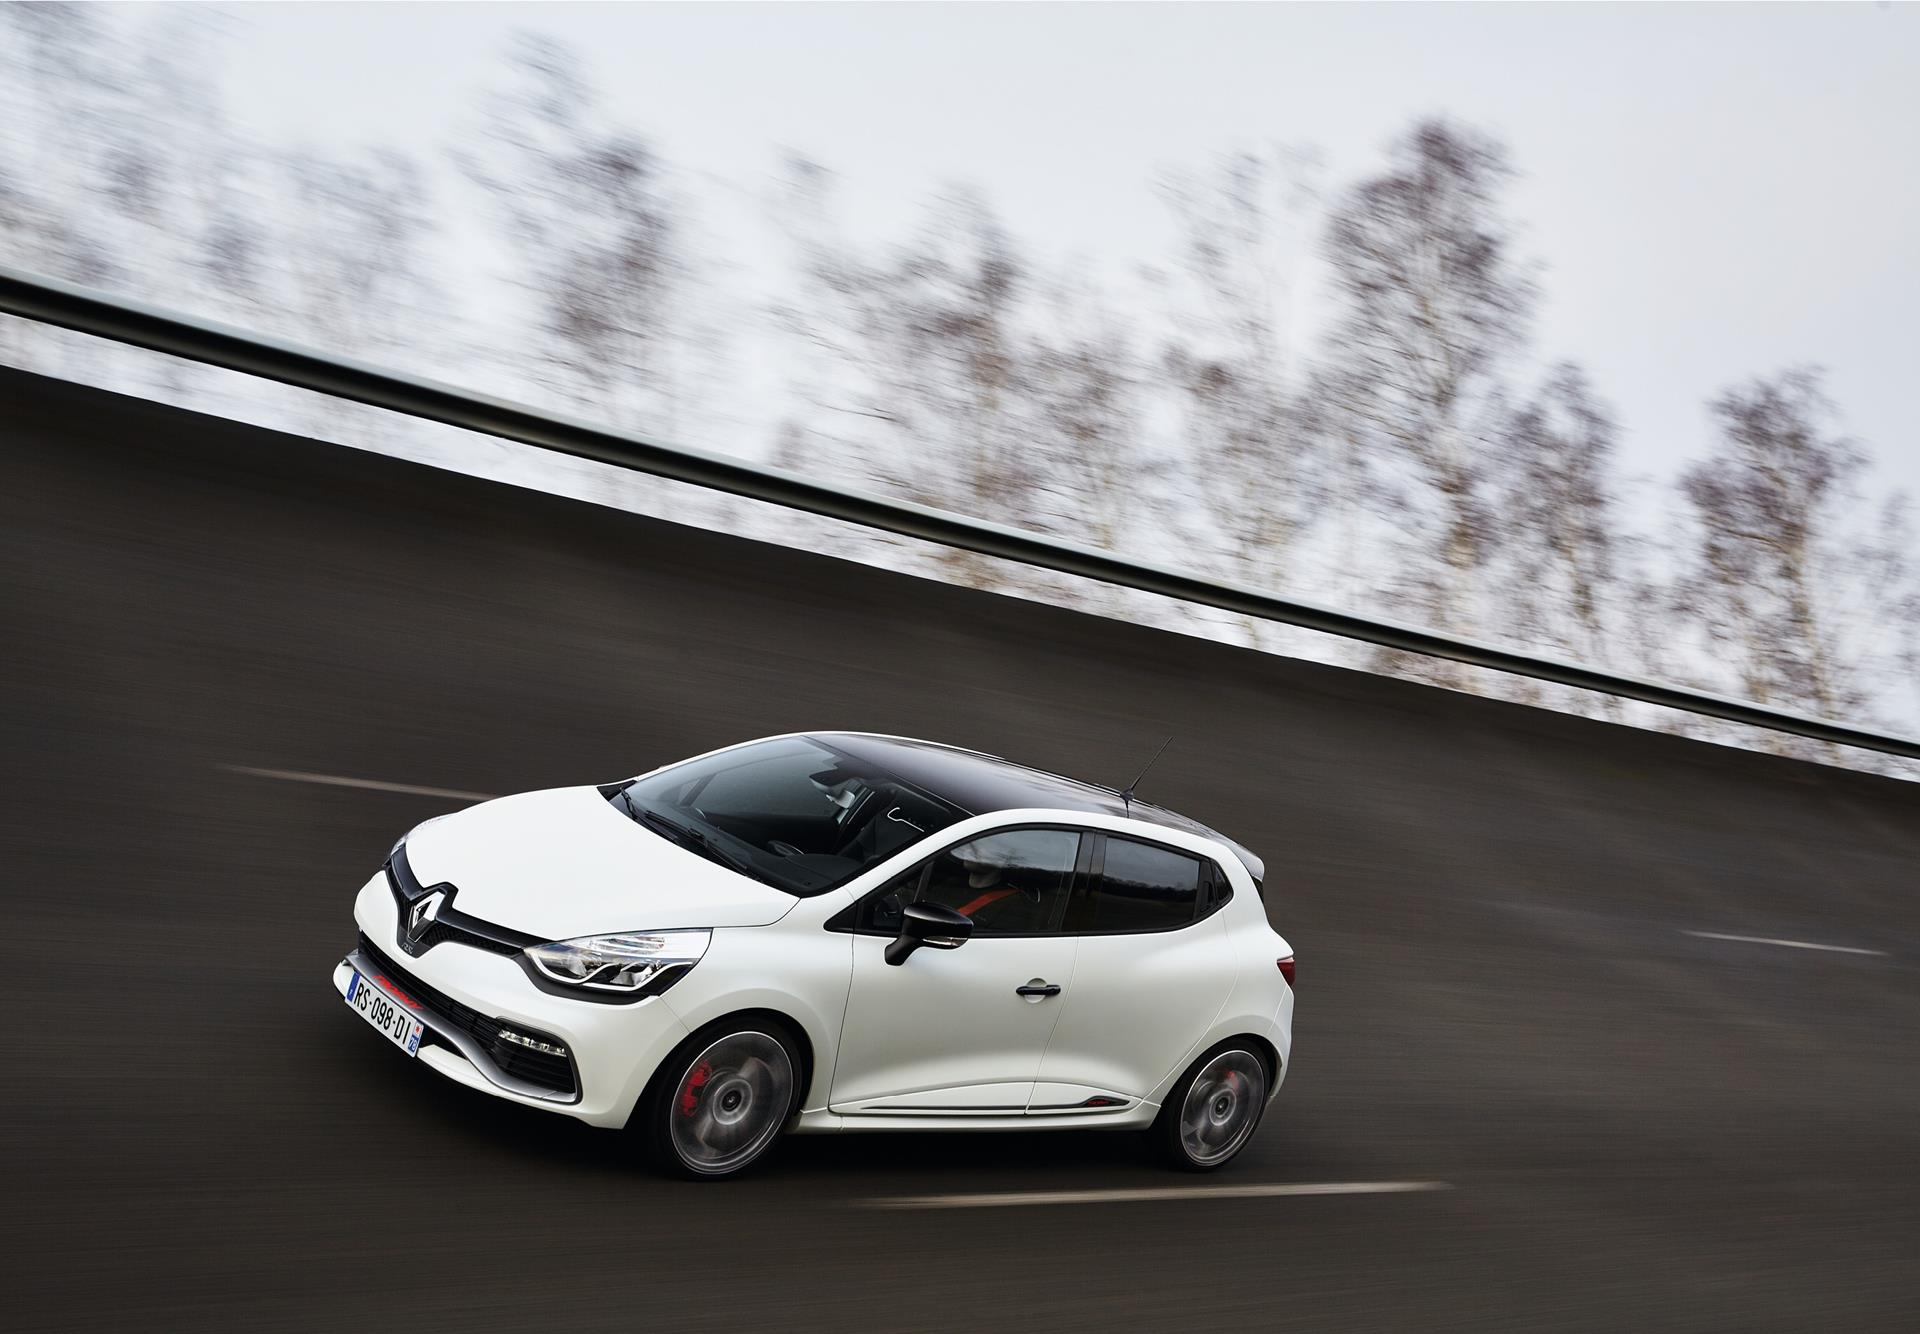 2015 Renault Clio Renaultsport 220 Trophy technical and mechanical